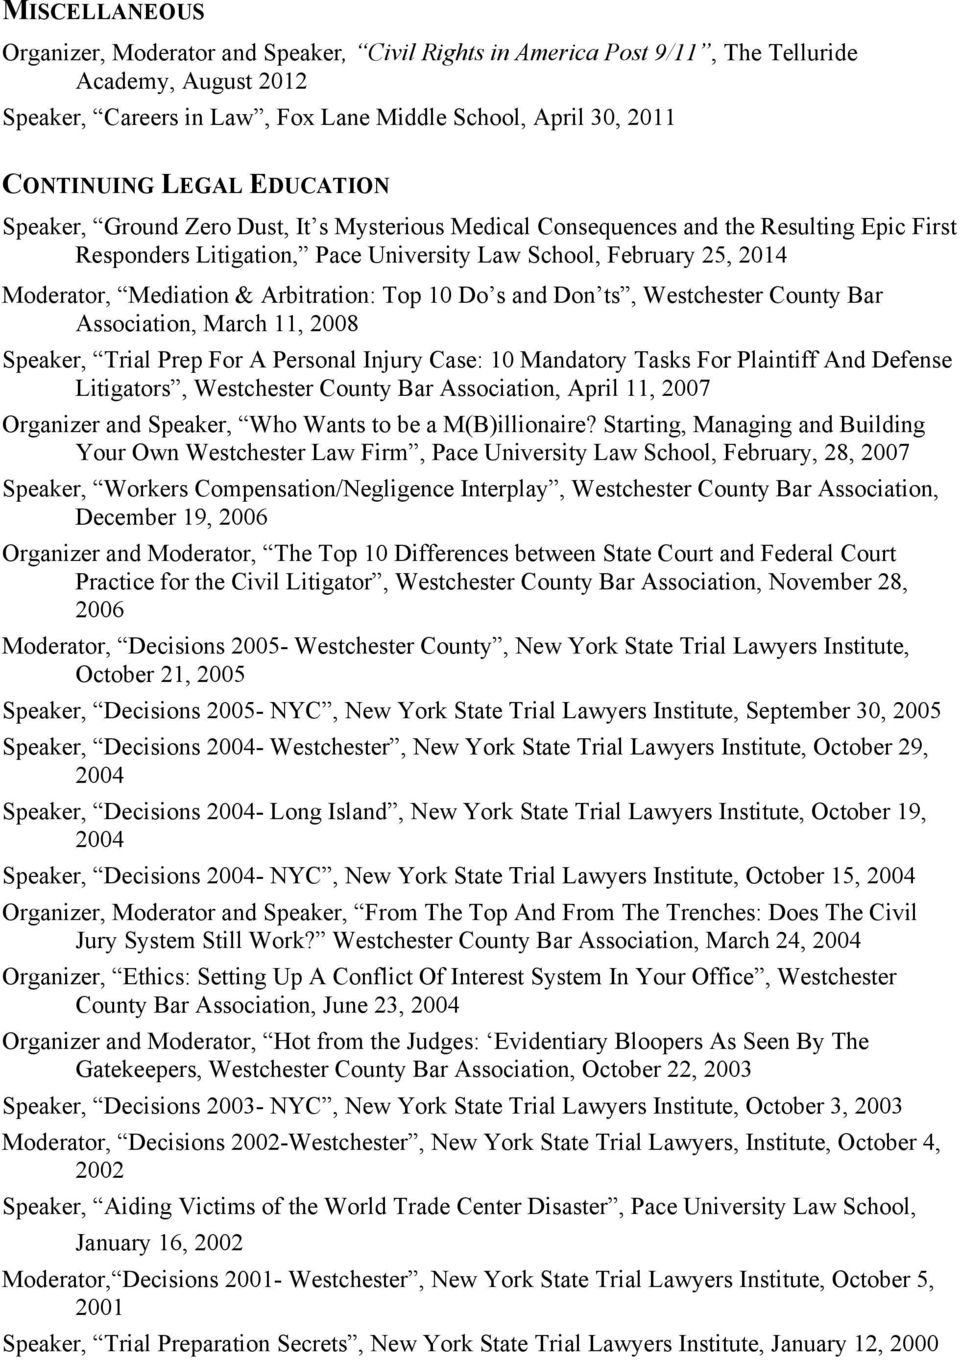 Arbitration: Top 10 Do s and Don ts, Westchester County Bar Association, March 11, 2008 Speaker, Trial Prep For A Personal Injury Case: 10 Mandatory Tasks For Plaintiff And Defense Litigators,